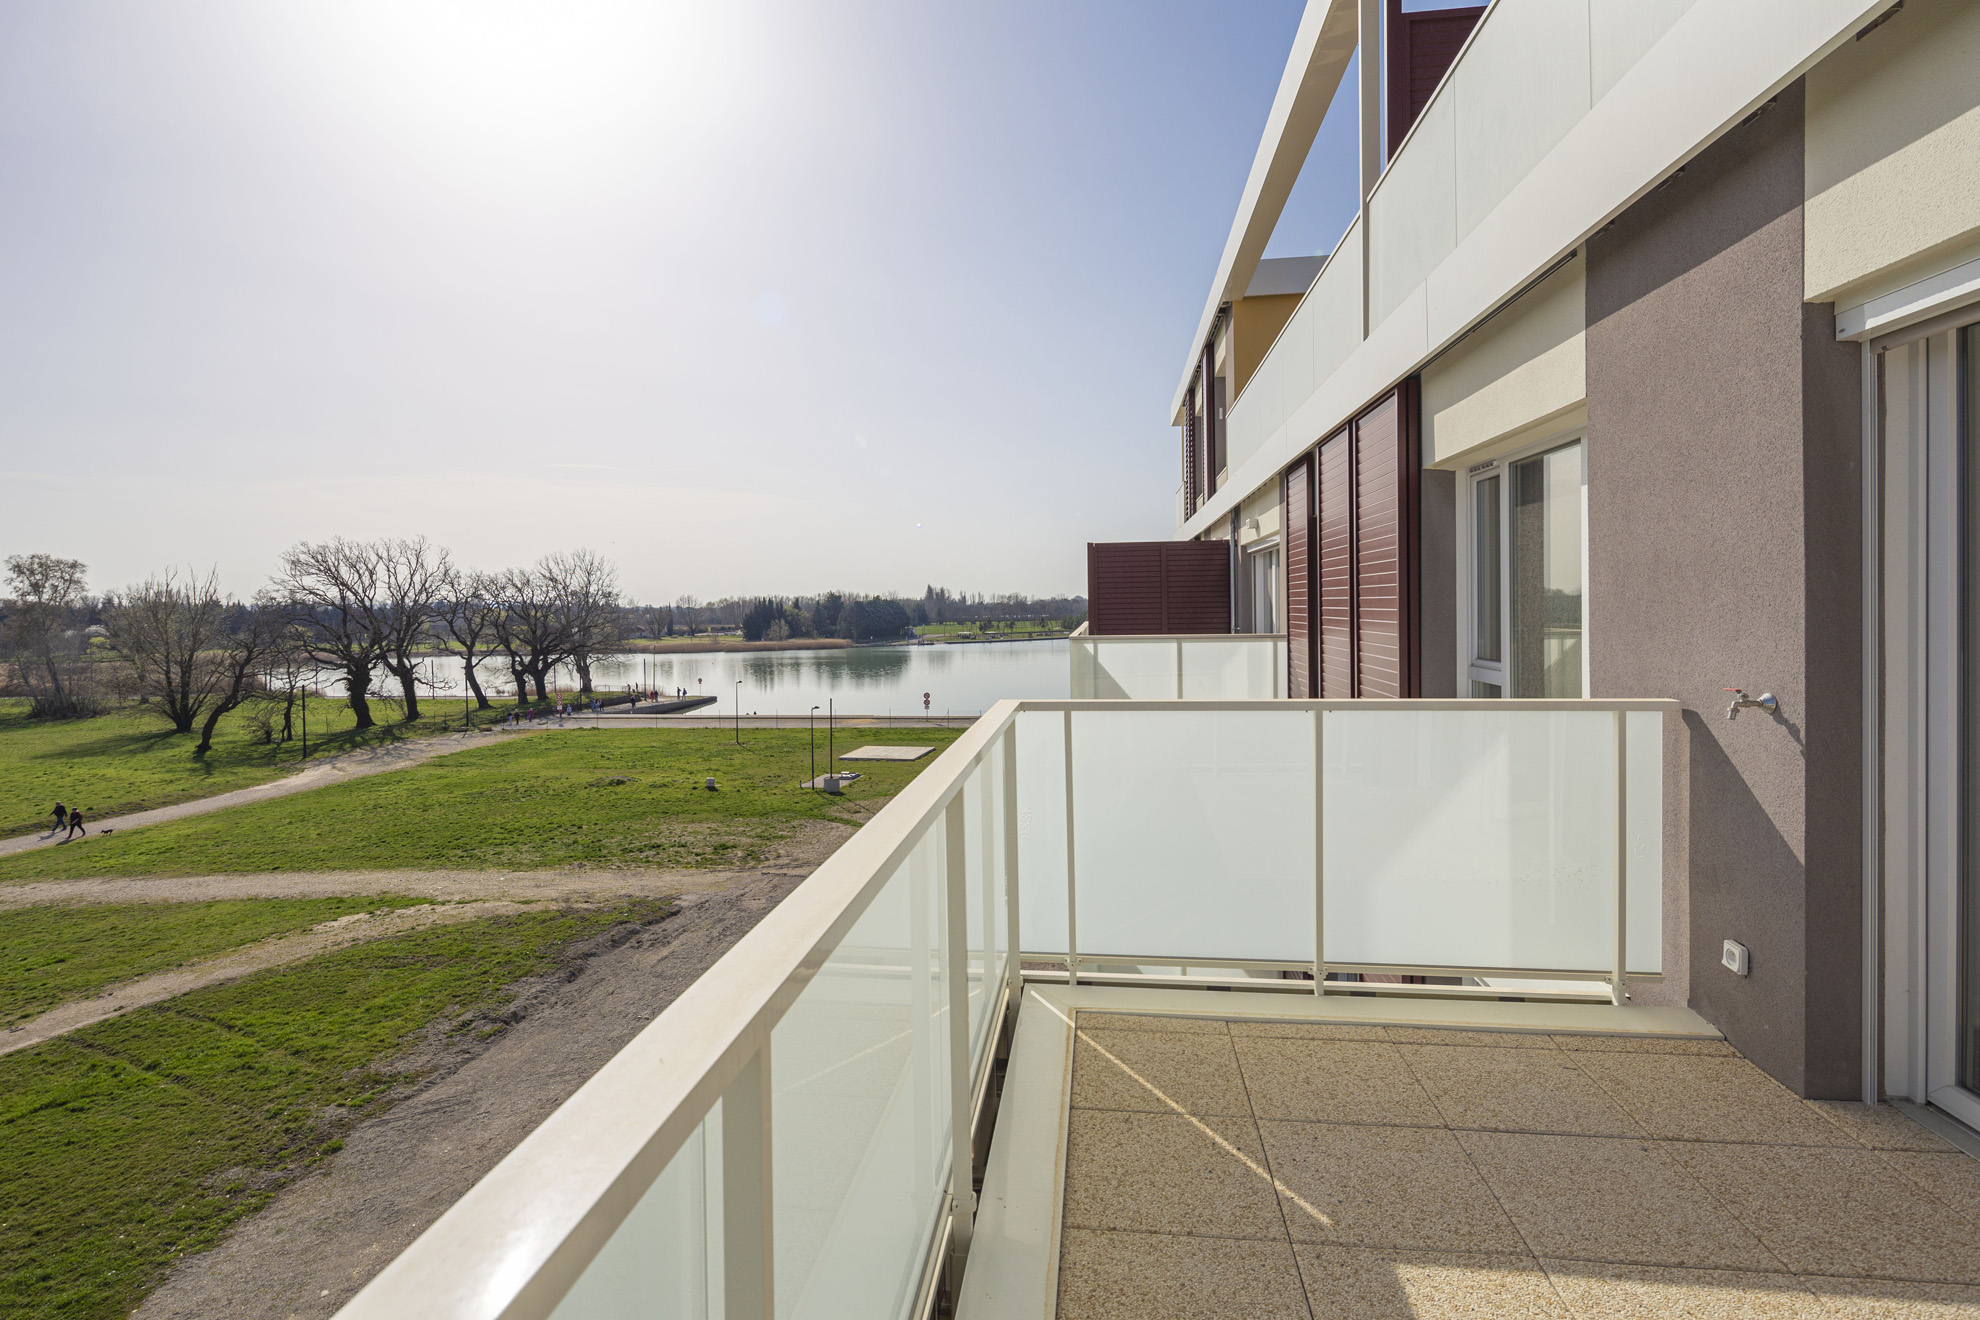 Patio du Lac-monteux-residence-lac-bord-plage-neuf-investissement-pinel-4